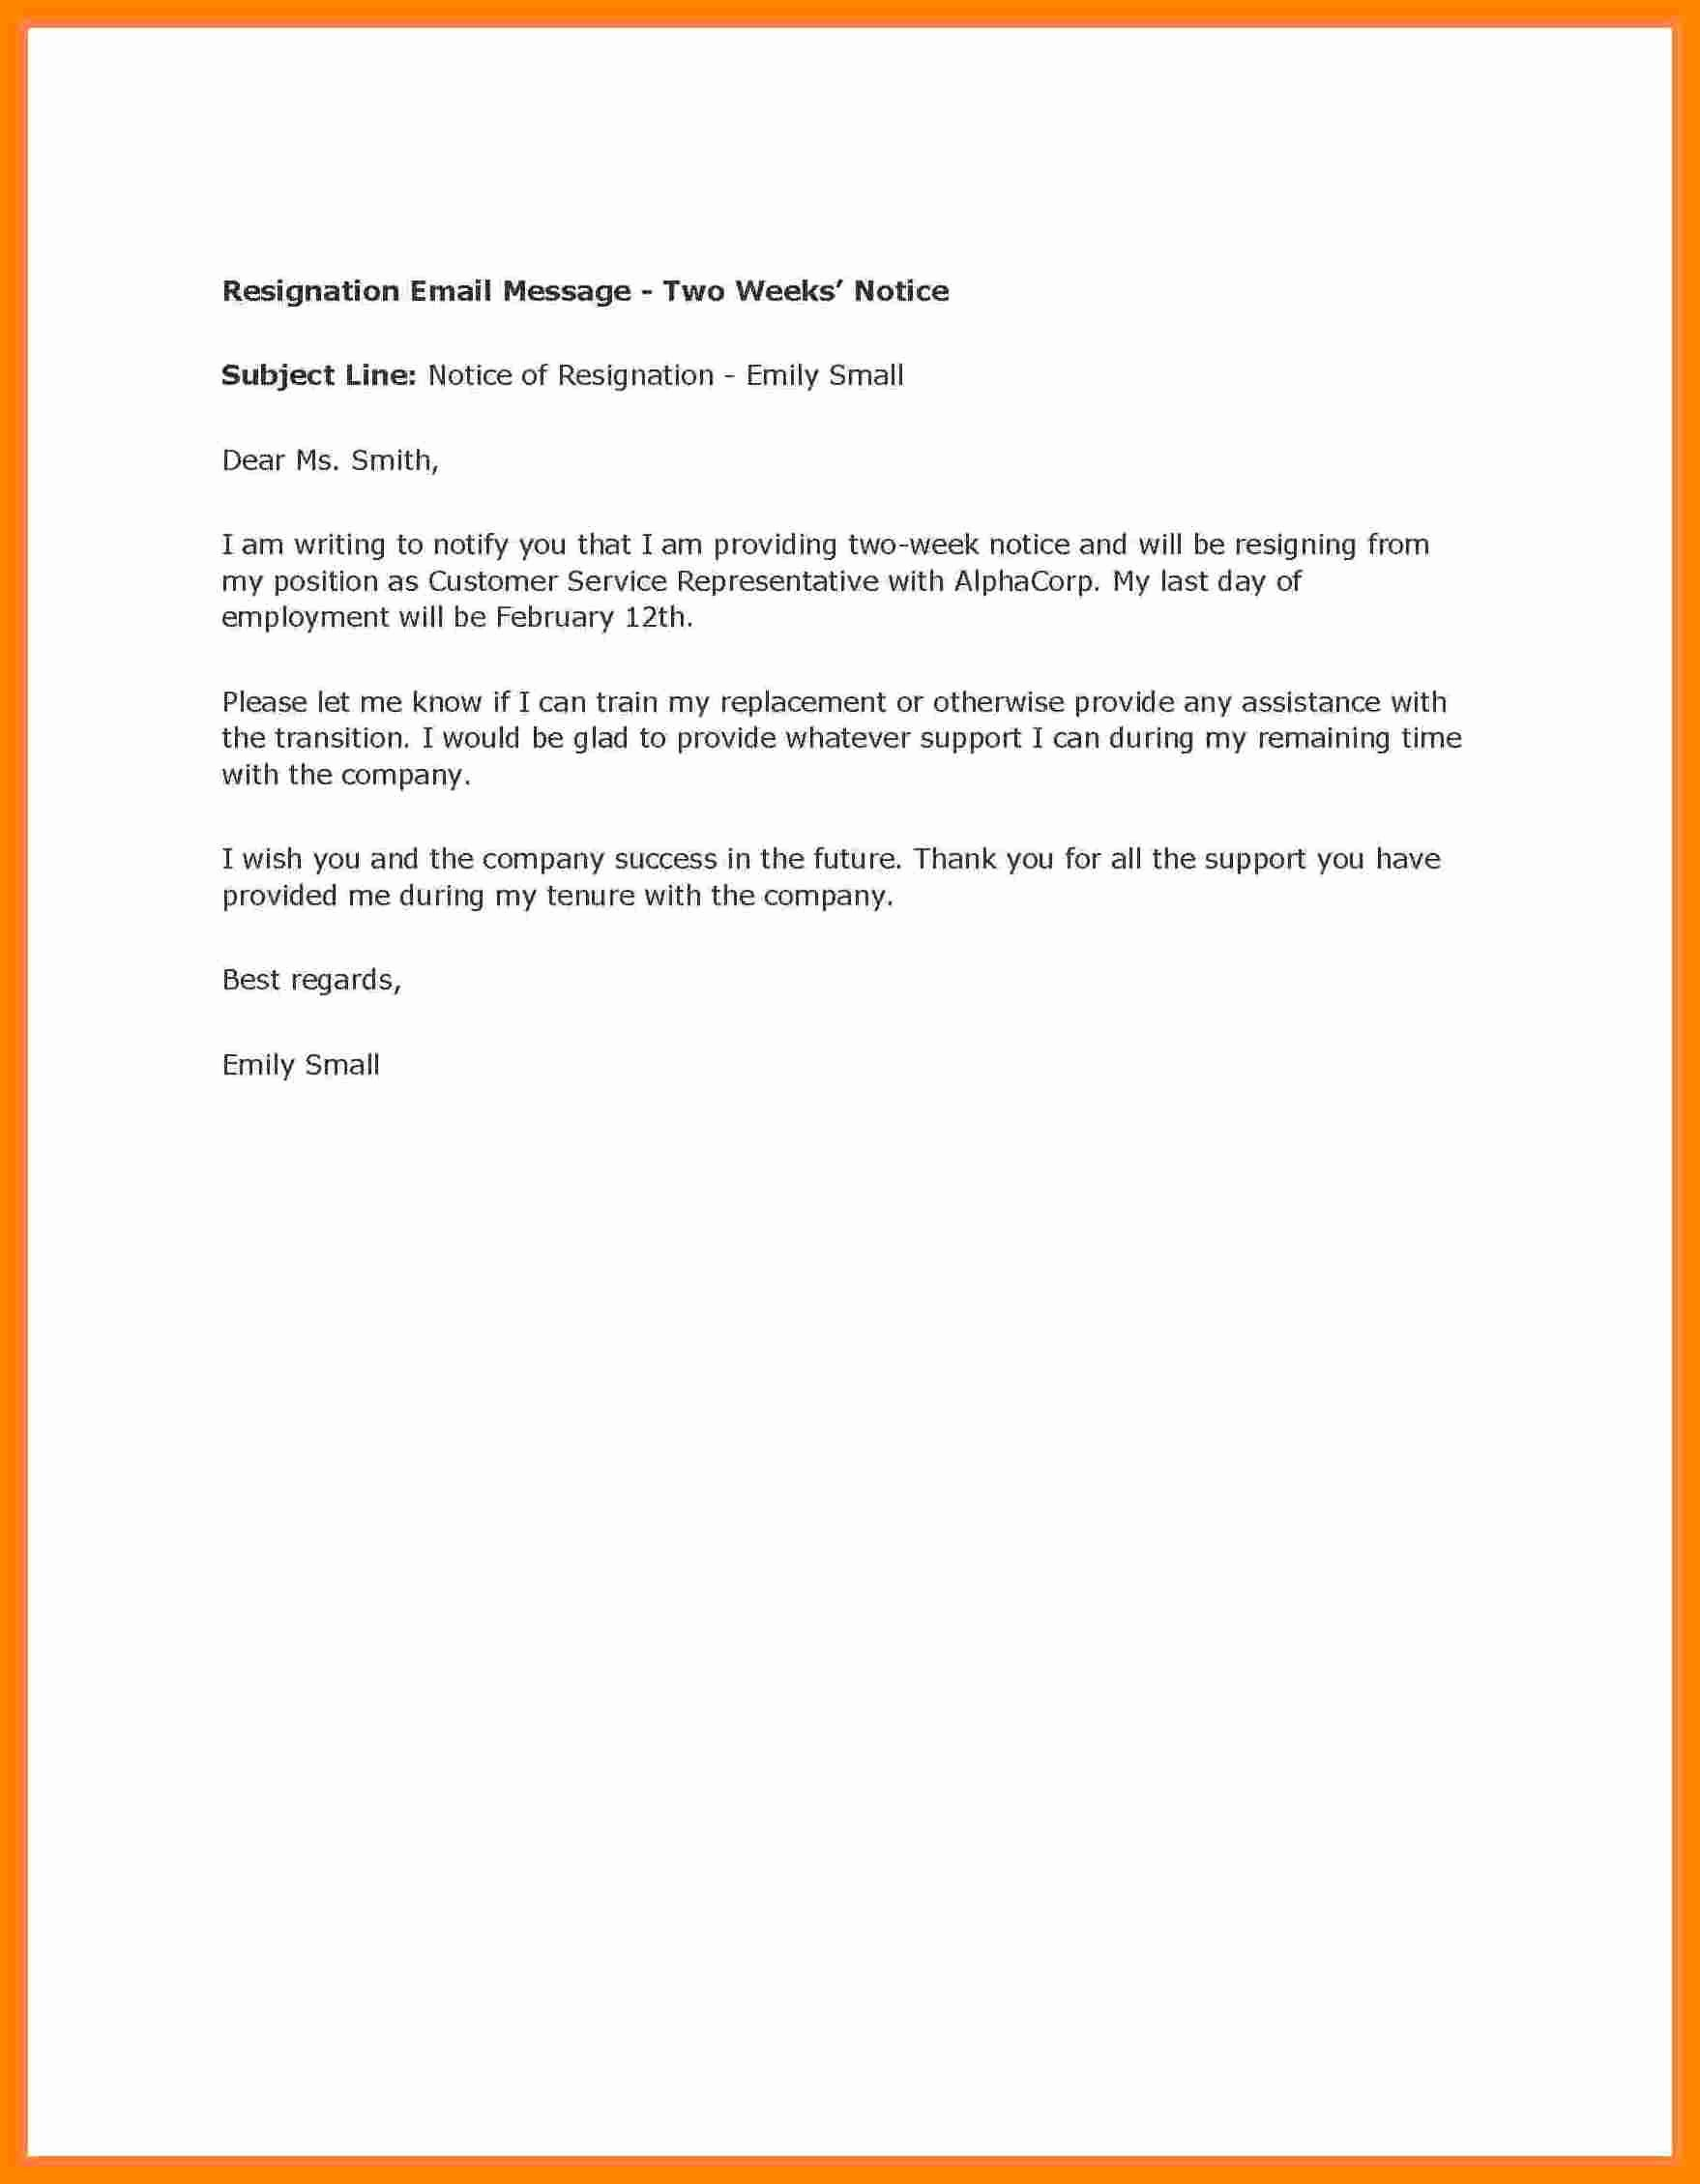 2 Weeks Notice Letter for Retail New 8 Letter Of Resignation 2 Weeks Notice Nurse